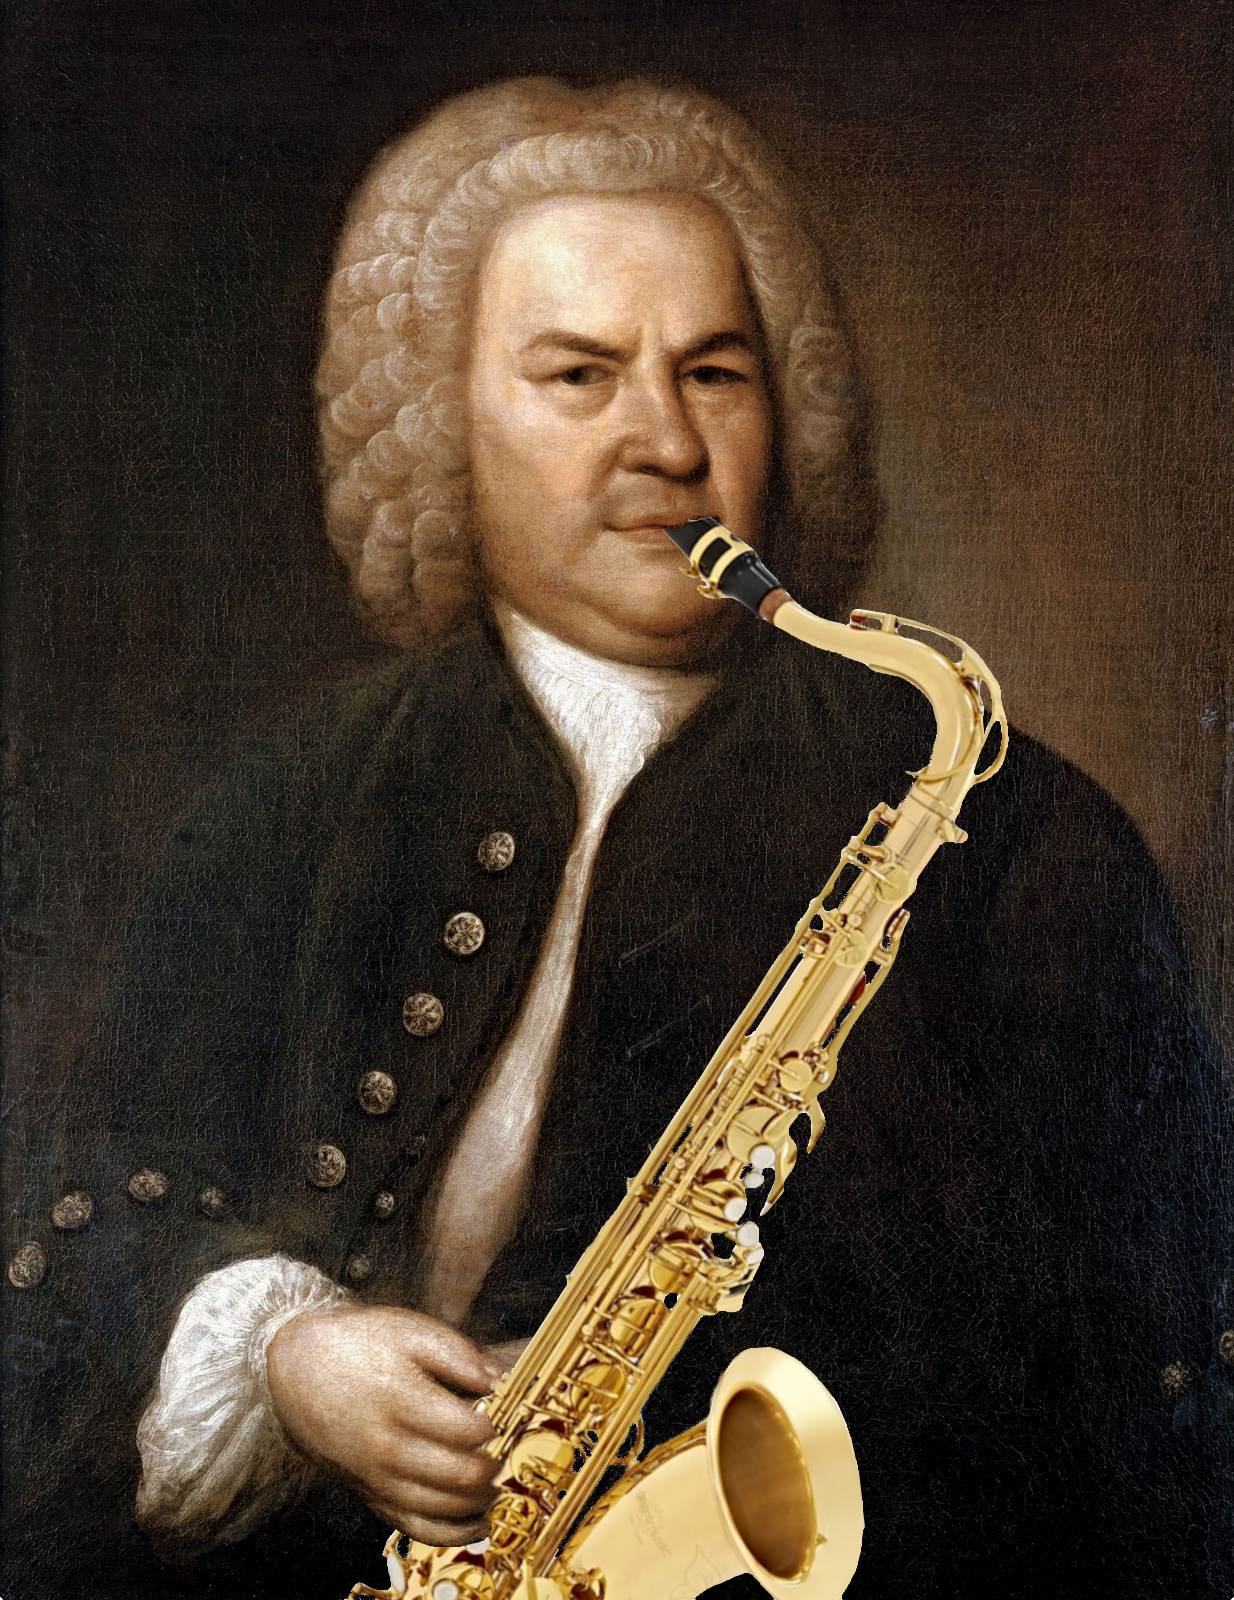 Not certain J. S. Bach played tenor sax. Will have to ask Steve.